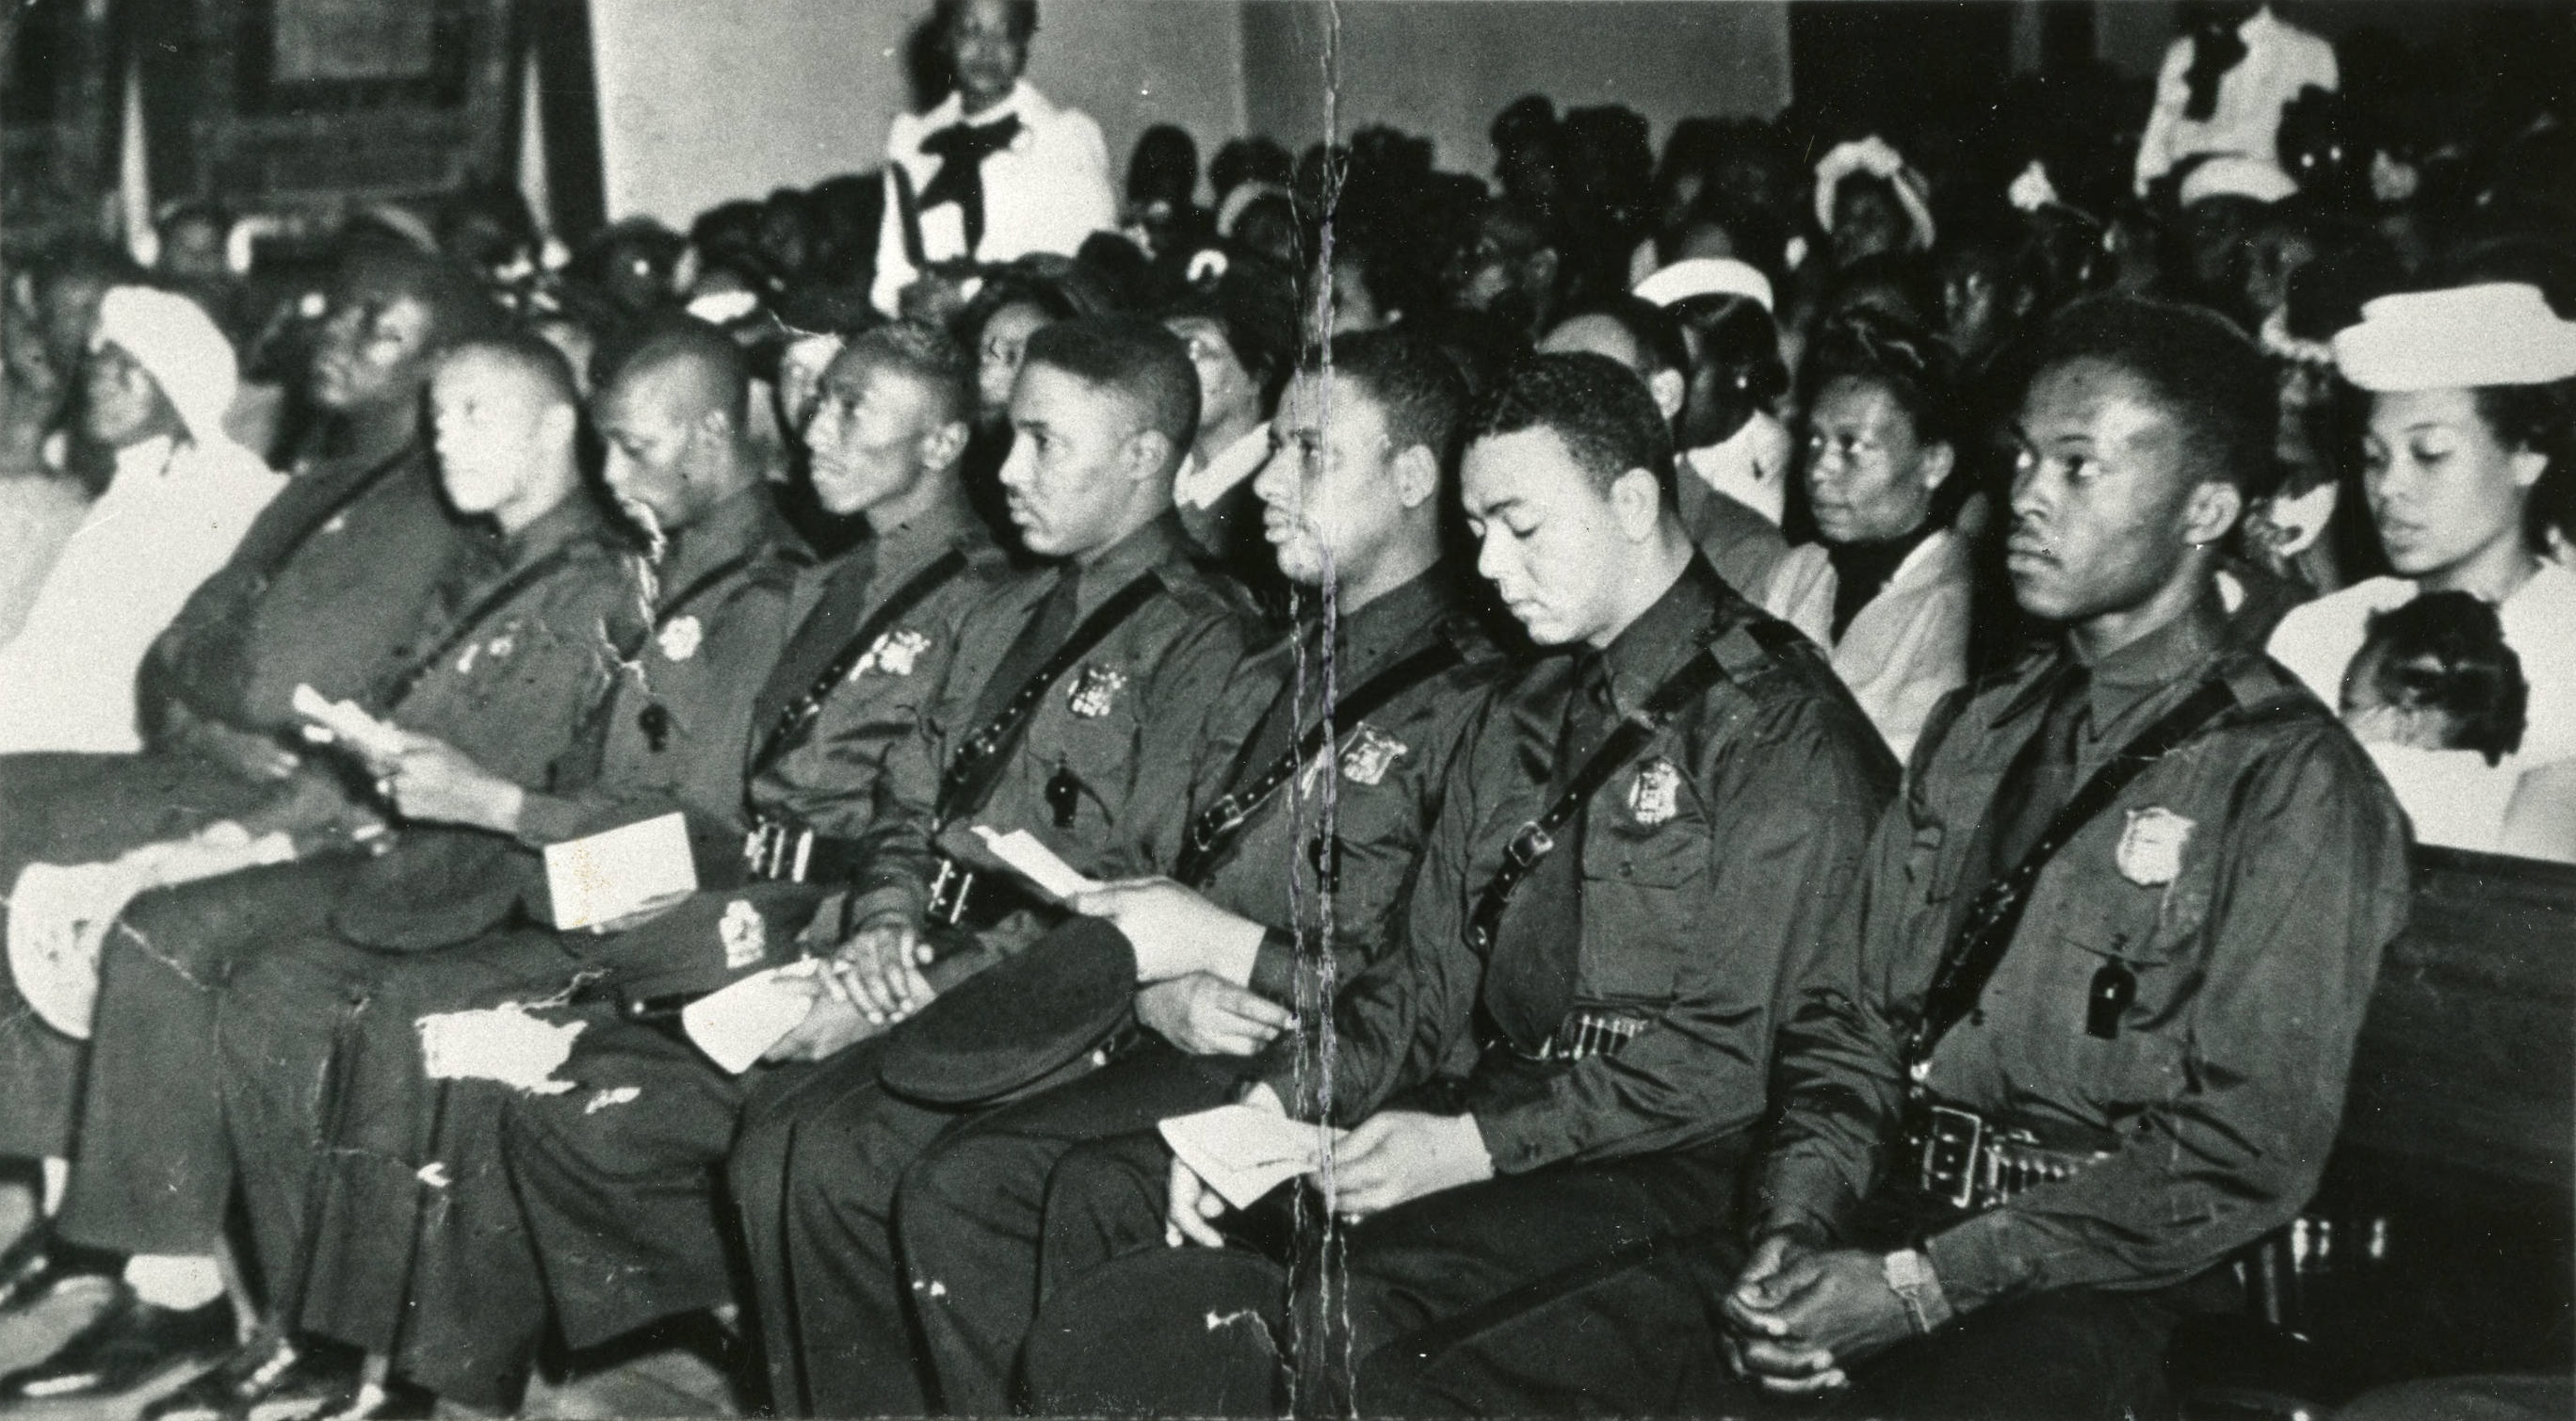 facts about atlanta s first black police officers your black world 9 facts about atlanta s first black police officers